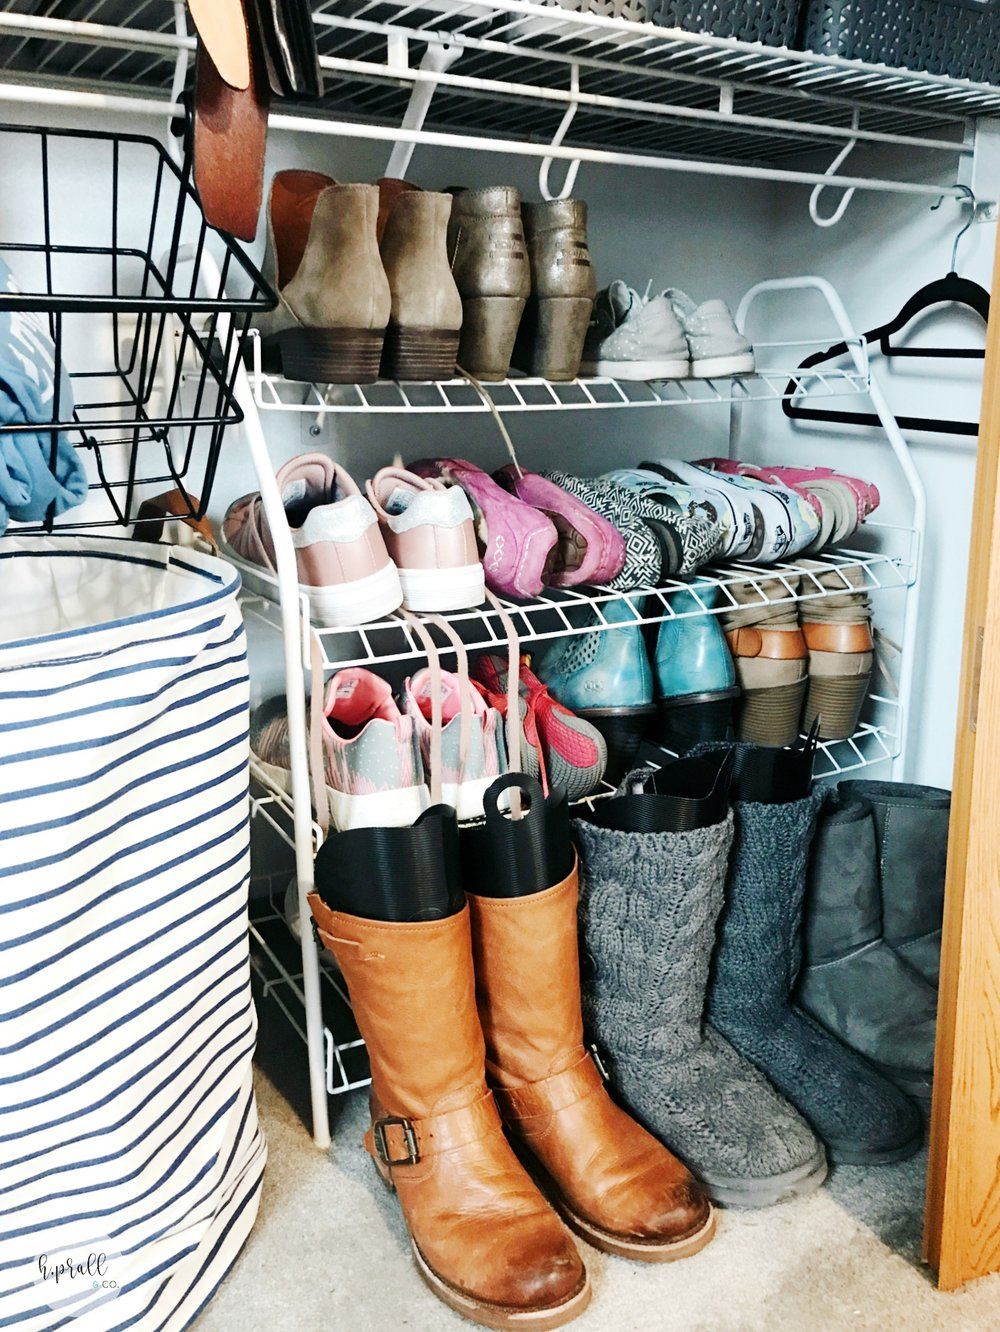 Get our easy tips for organizing your closets at hprallandco.com